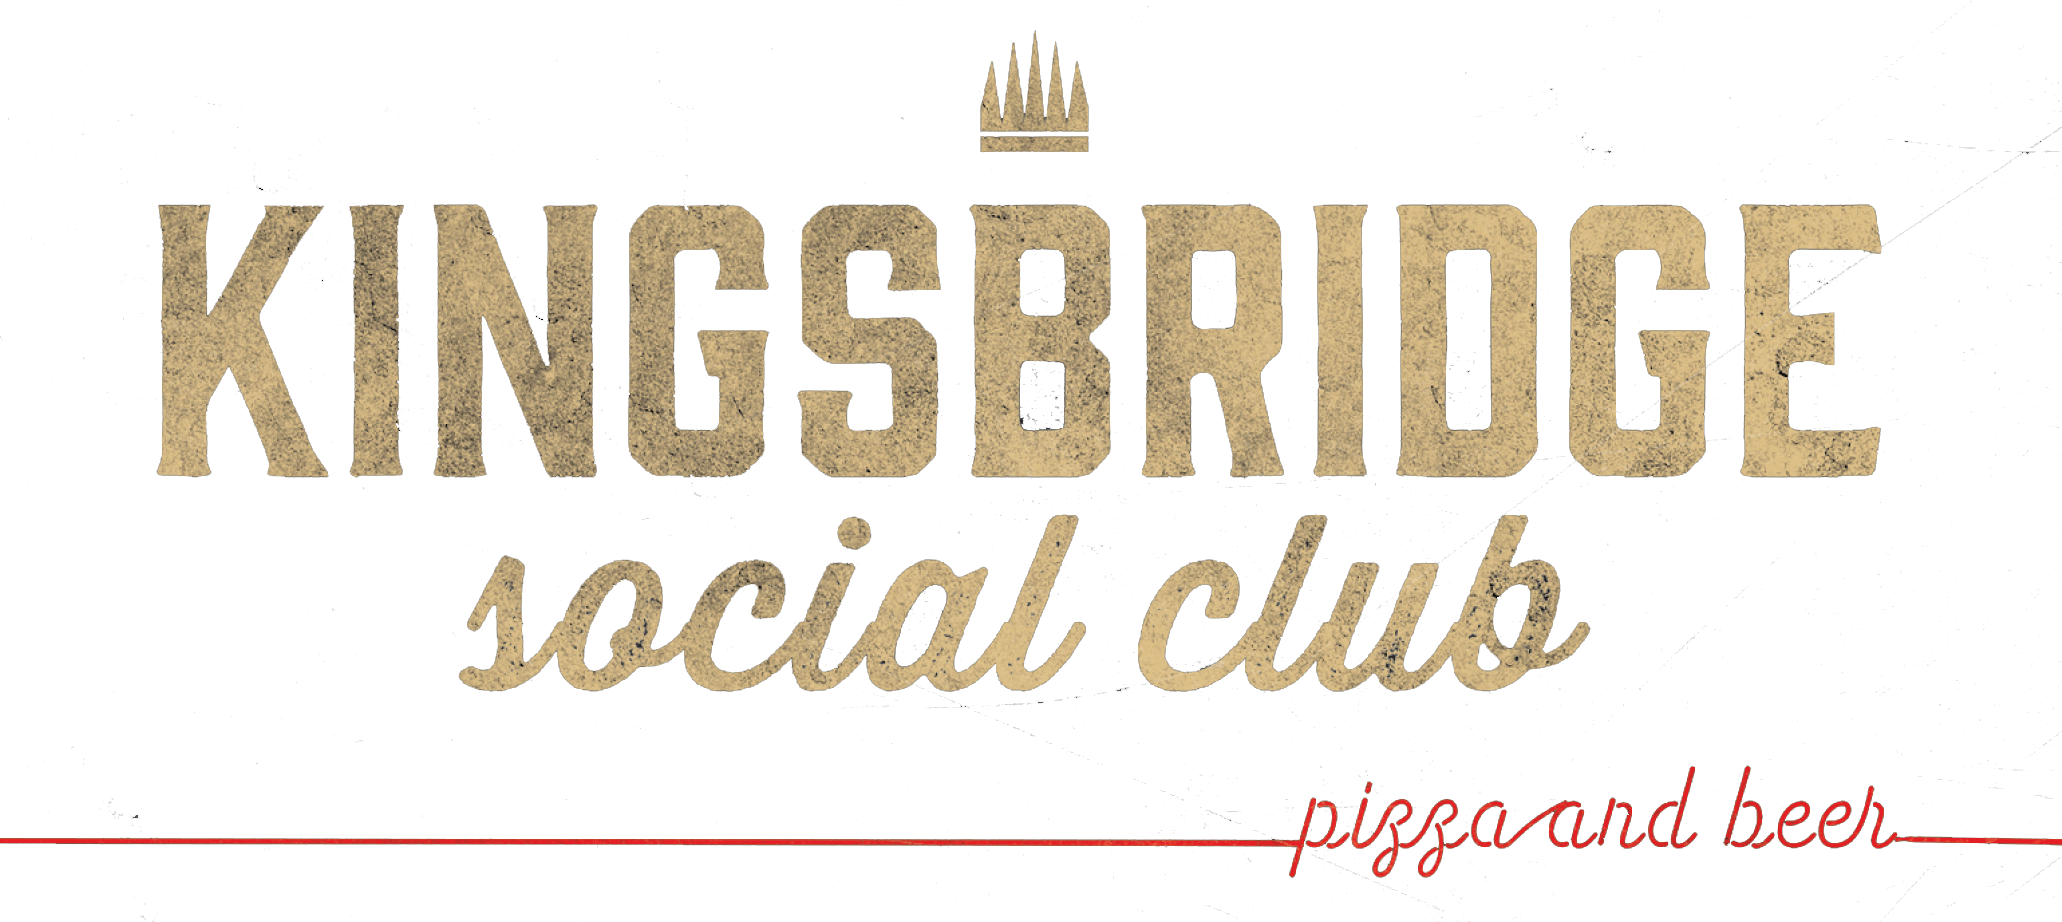 Kingsbridge Social Club Home